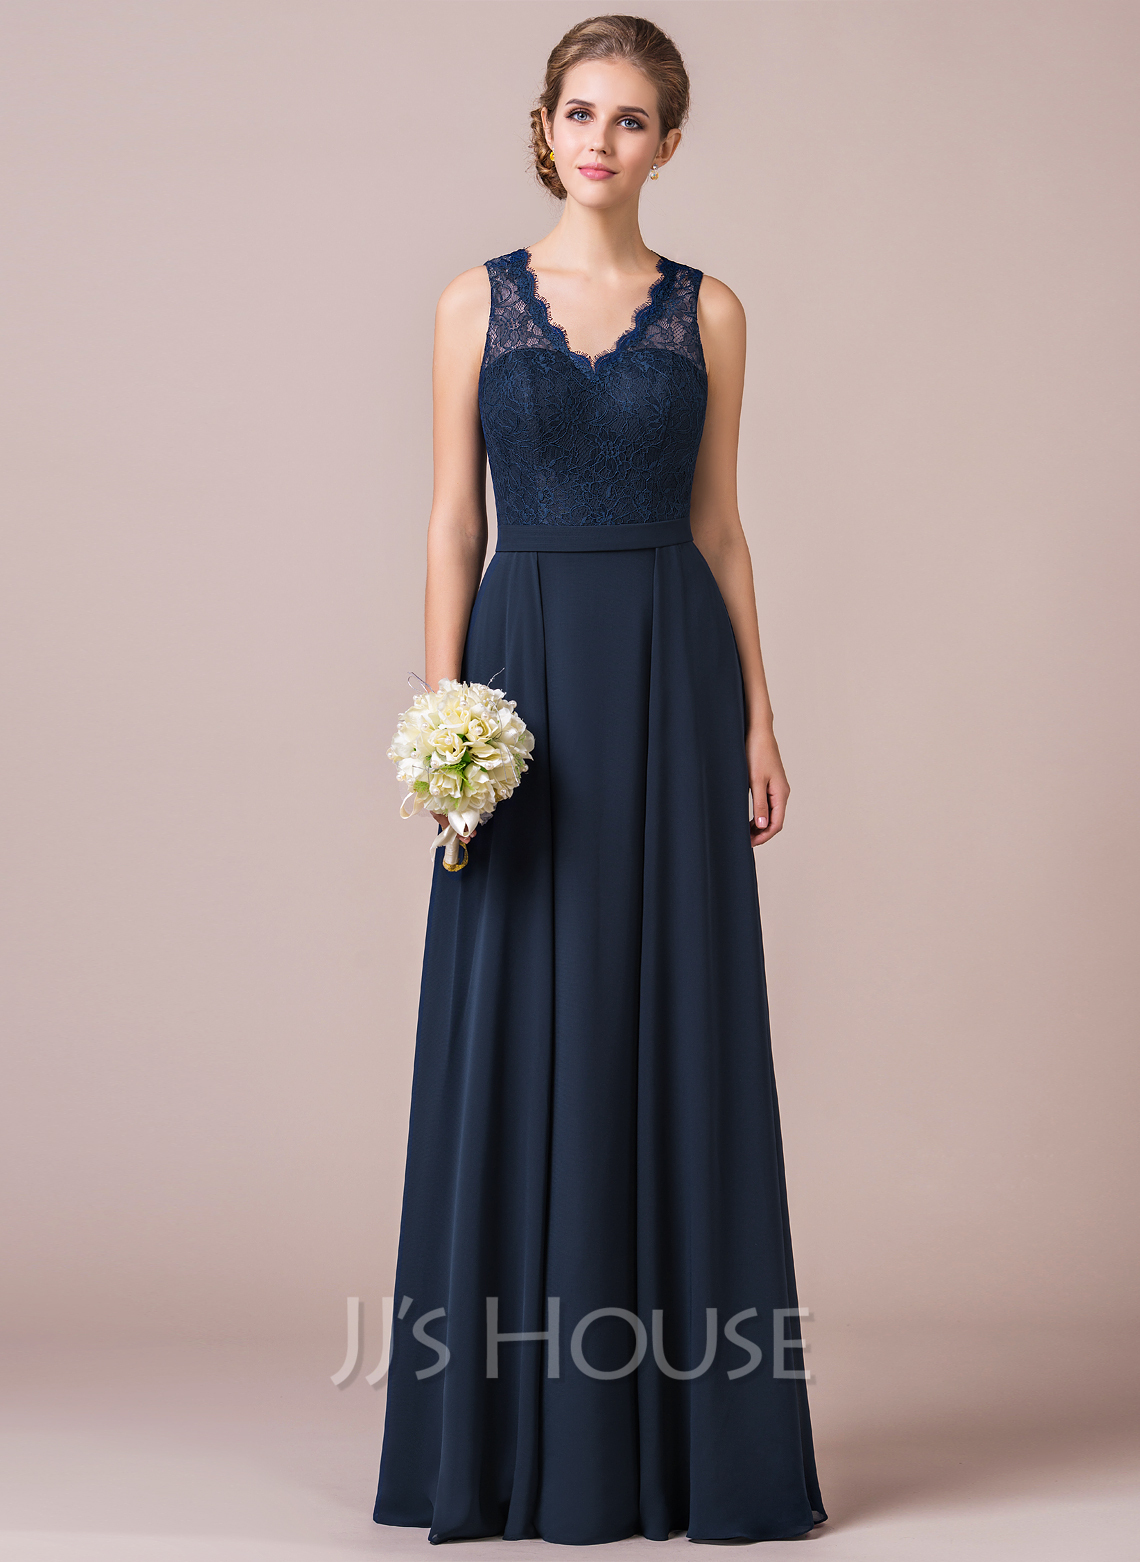 A-Line V-neck Floor-length Chiffon Lace Overlay Bridesmaid Dress. Loading  zoom f33fcd223